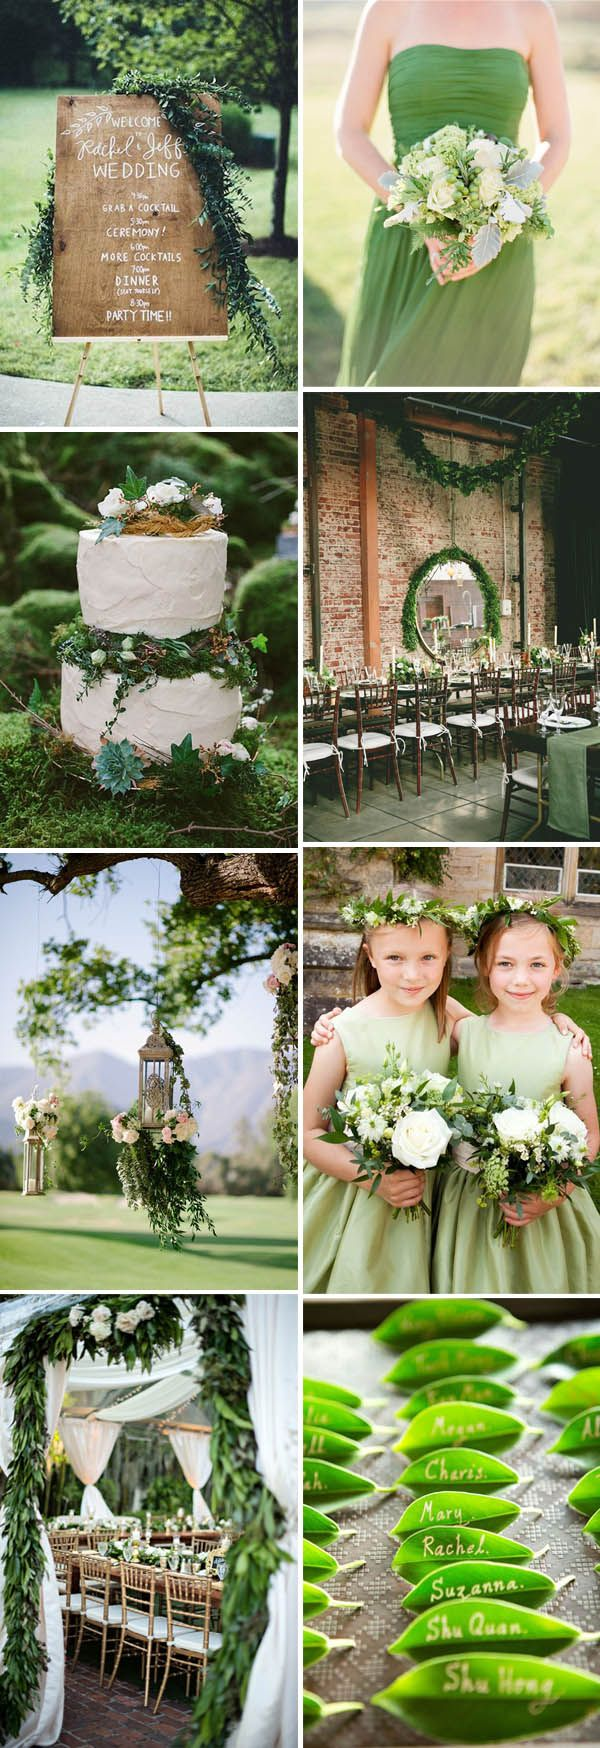 Lovers of green weddings? If you are still planning for your romantic greenery wedding in 2016, this gorgeous green wedding ideas collection is surely a big inspiration